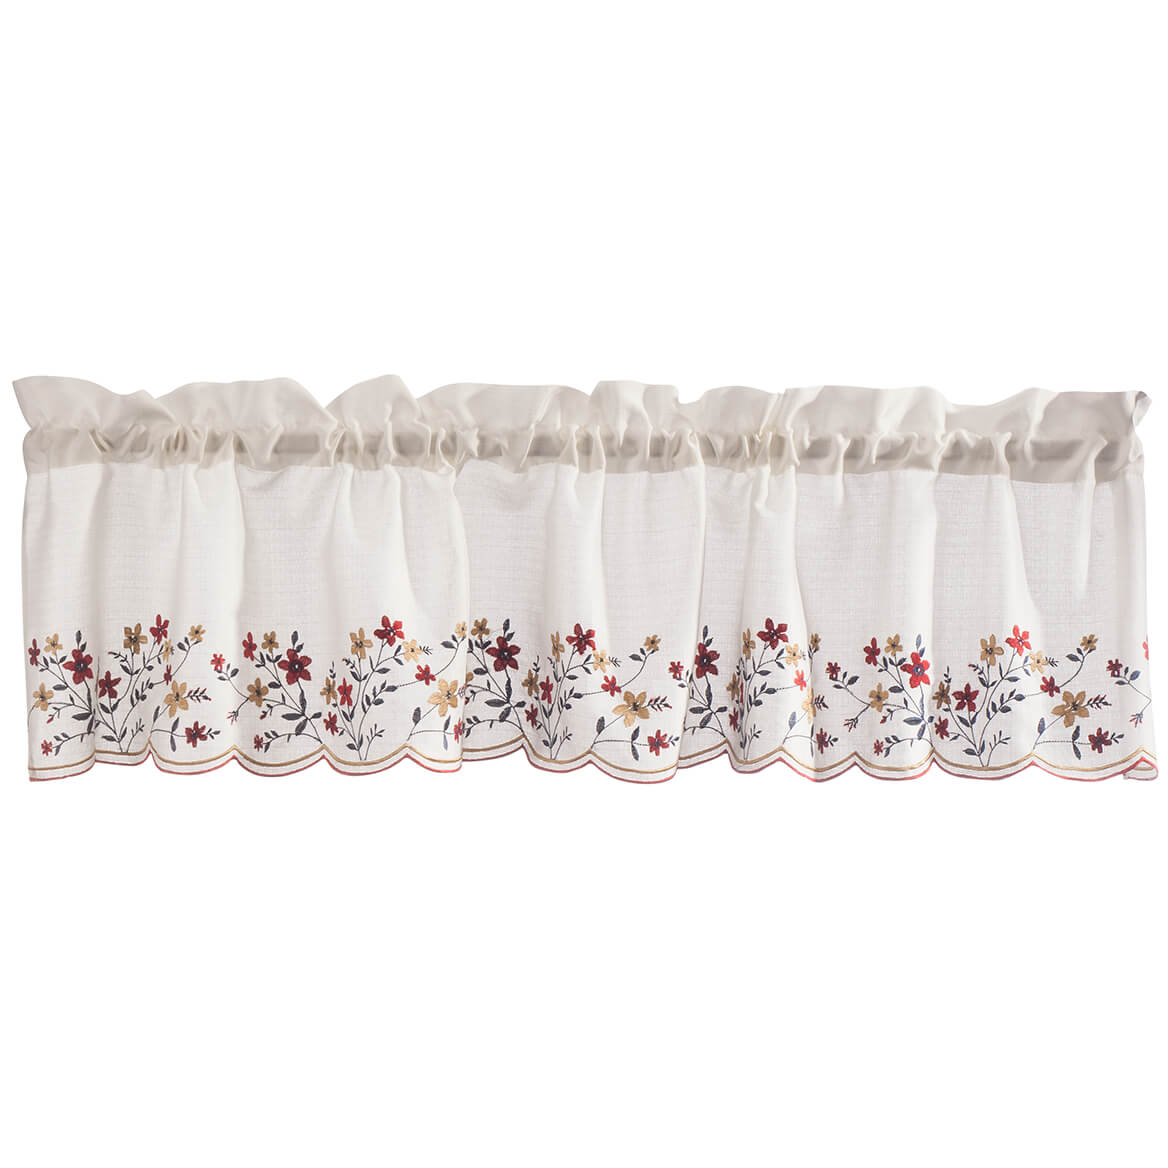 Floral Embroidered Insert Valance